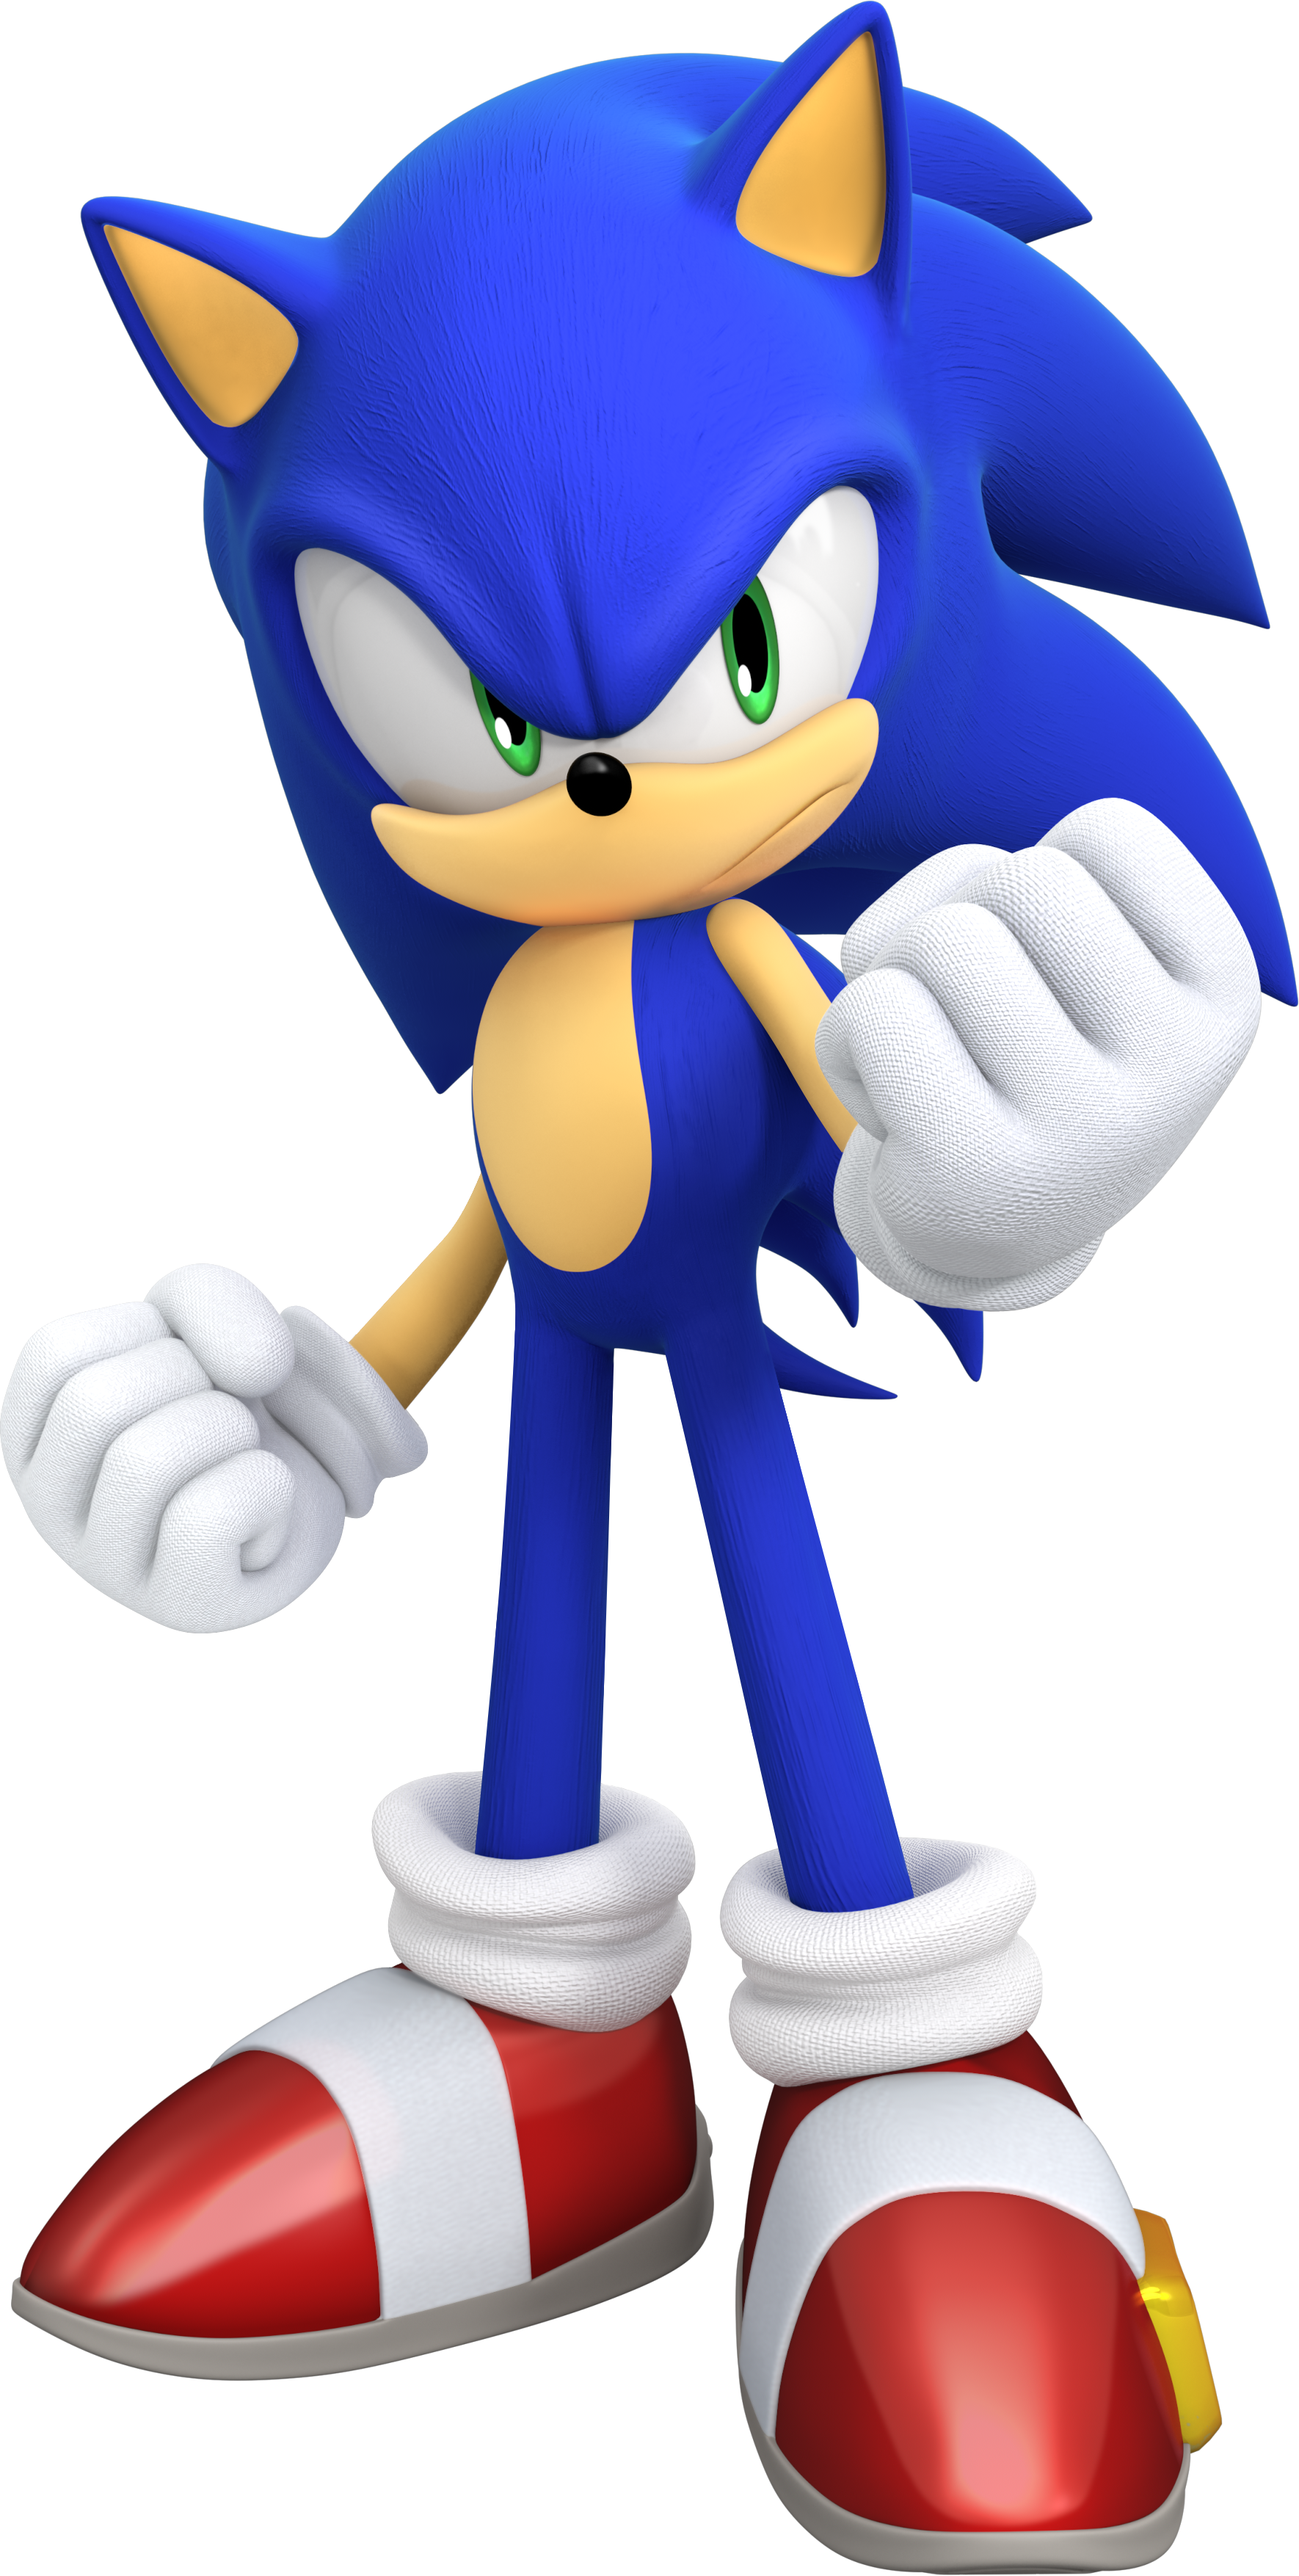 sonic the hedgehog miscellaneous sonic news network fandom